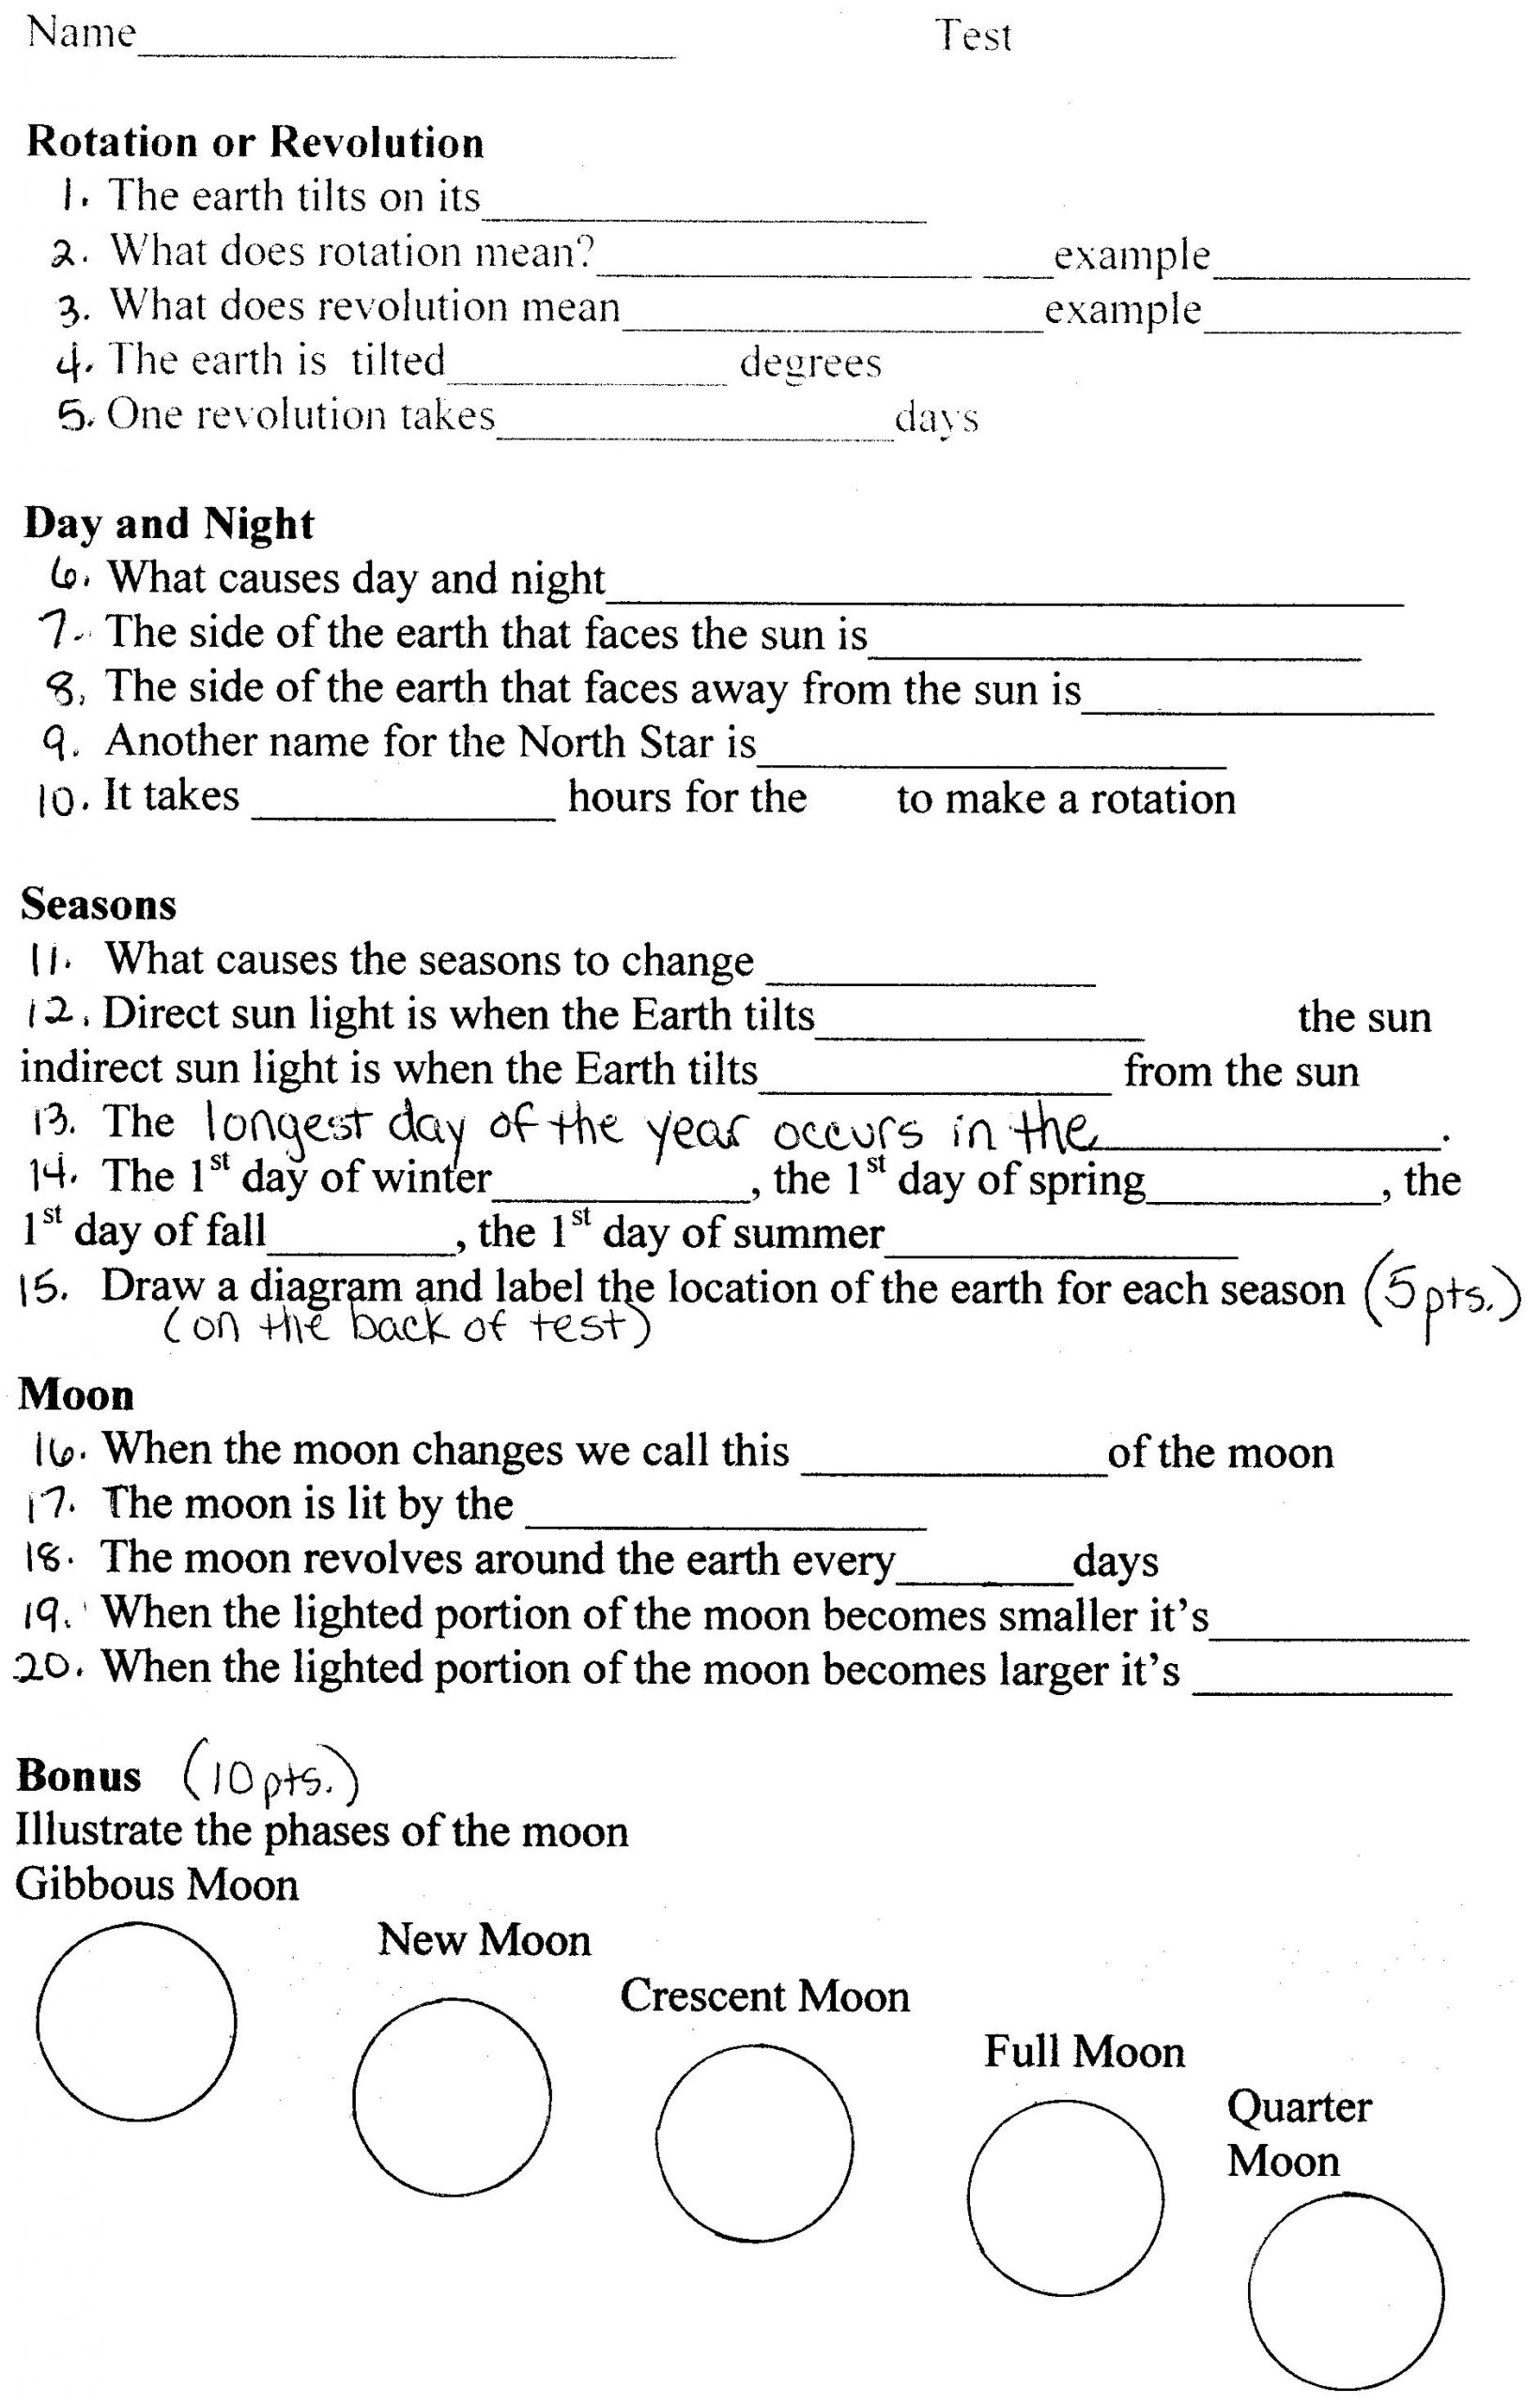 Astronomy Worksheets High School Pdf astronomy Worksheets for High School